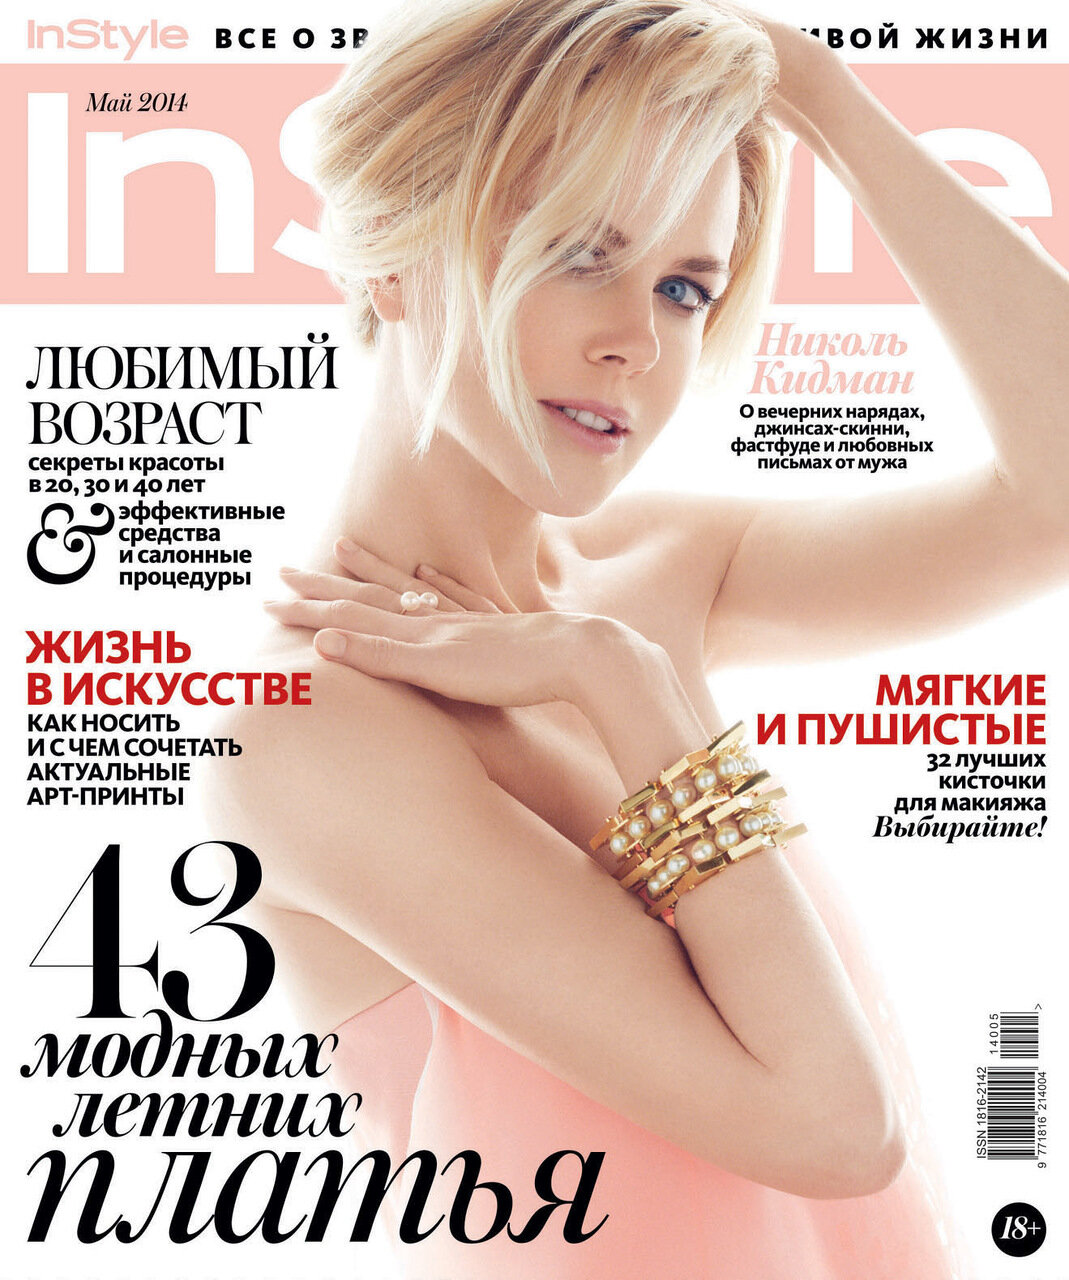 InStyle Russia - May 2014